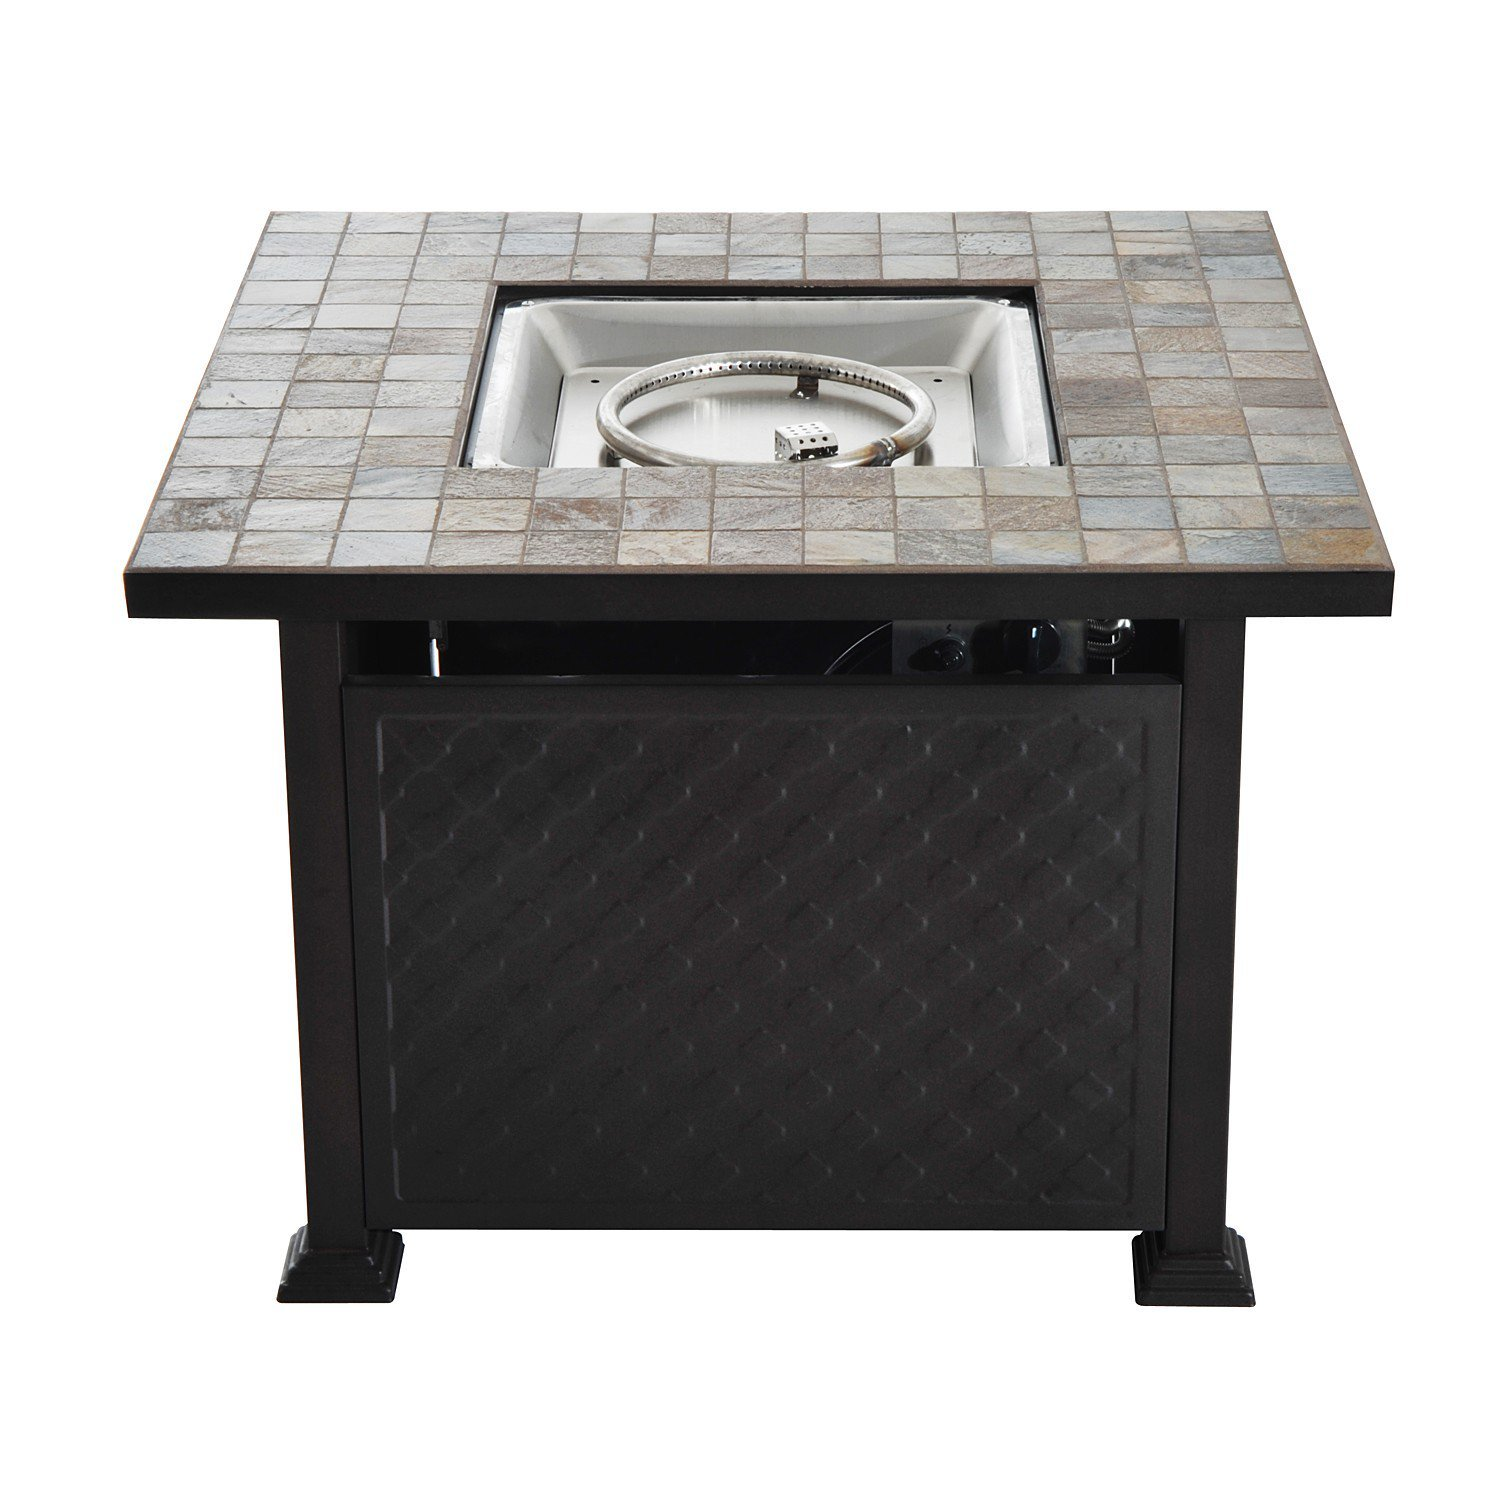 New LP Gas Fire Pit 45' Tile Slate Tabletop Wicker Base with ebook by MRT SUPPLY